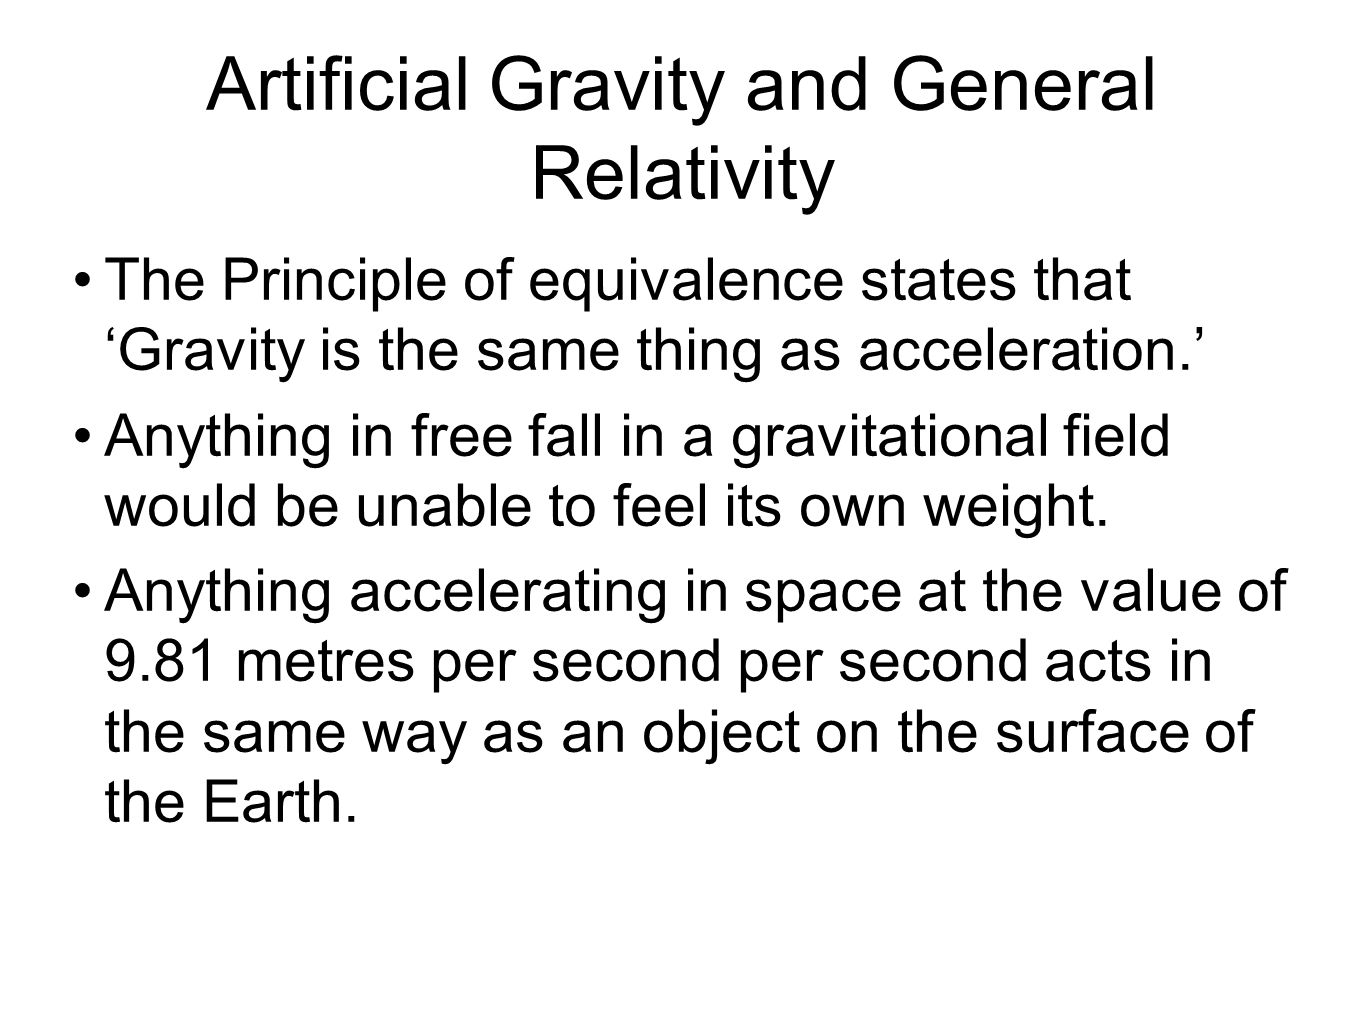 Artificial Gravity and General Relativity The Principle of equivalence states that 'Gravity is the same thing as acceleration.' Anything in free fall in a gravitational field would be unable to feel its own weight.